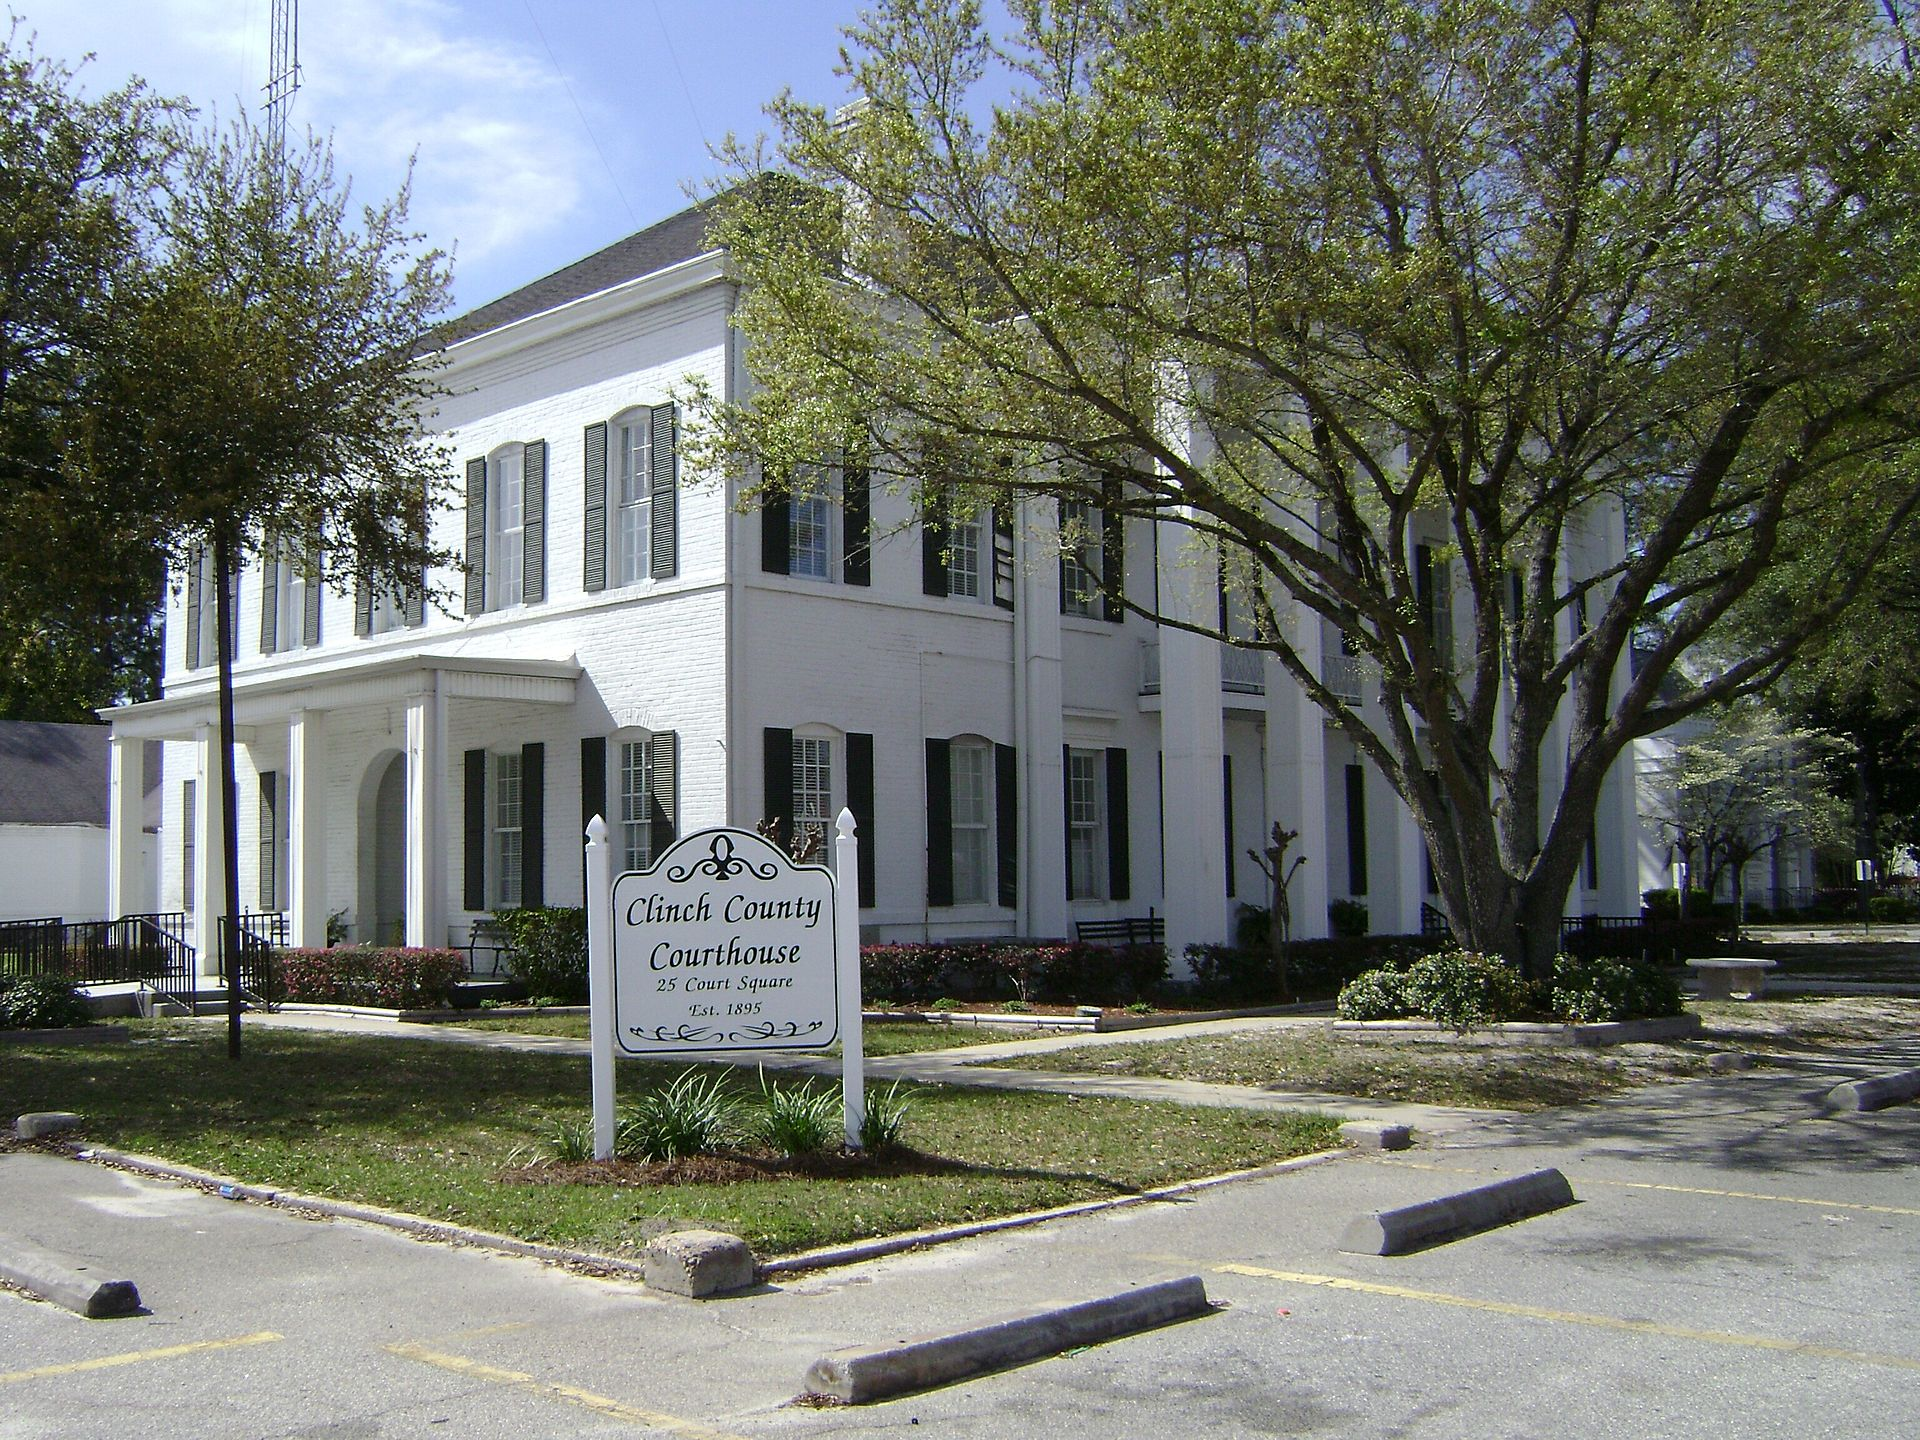 The Clinch County Courthouse